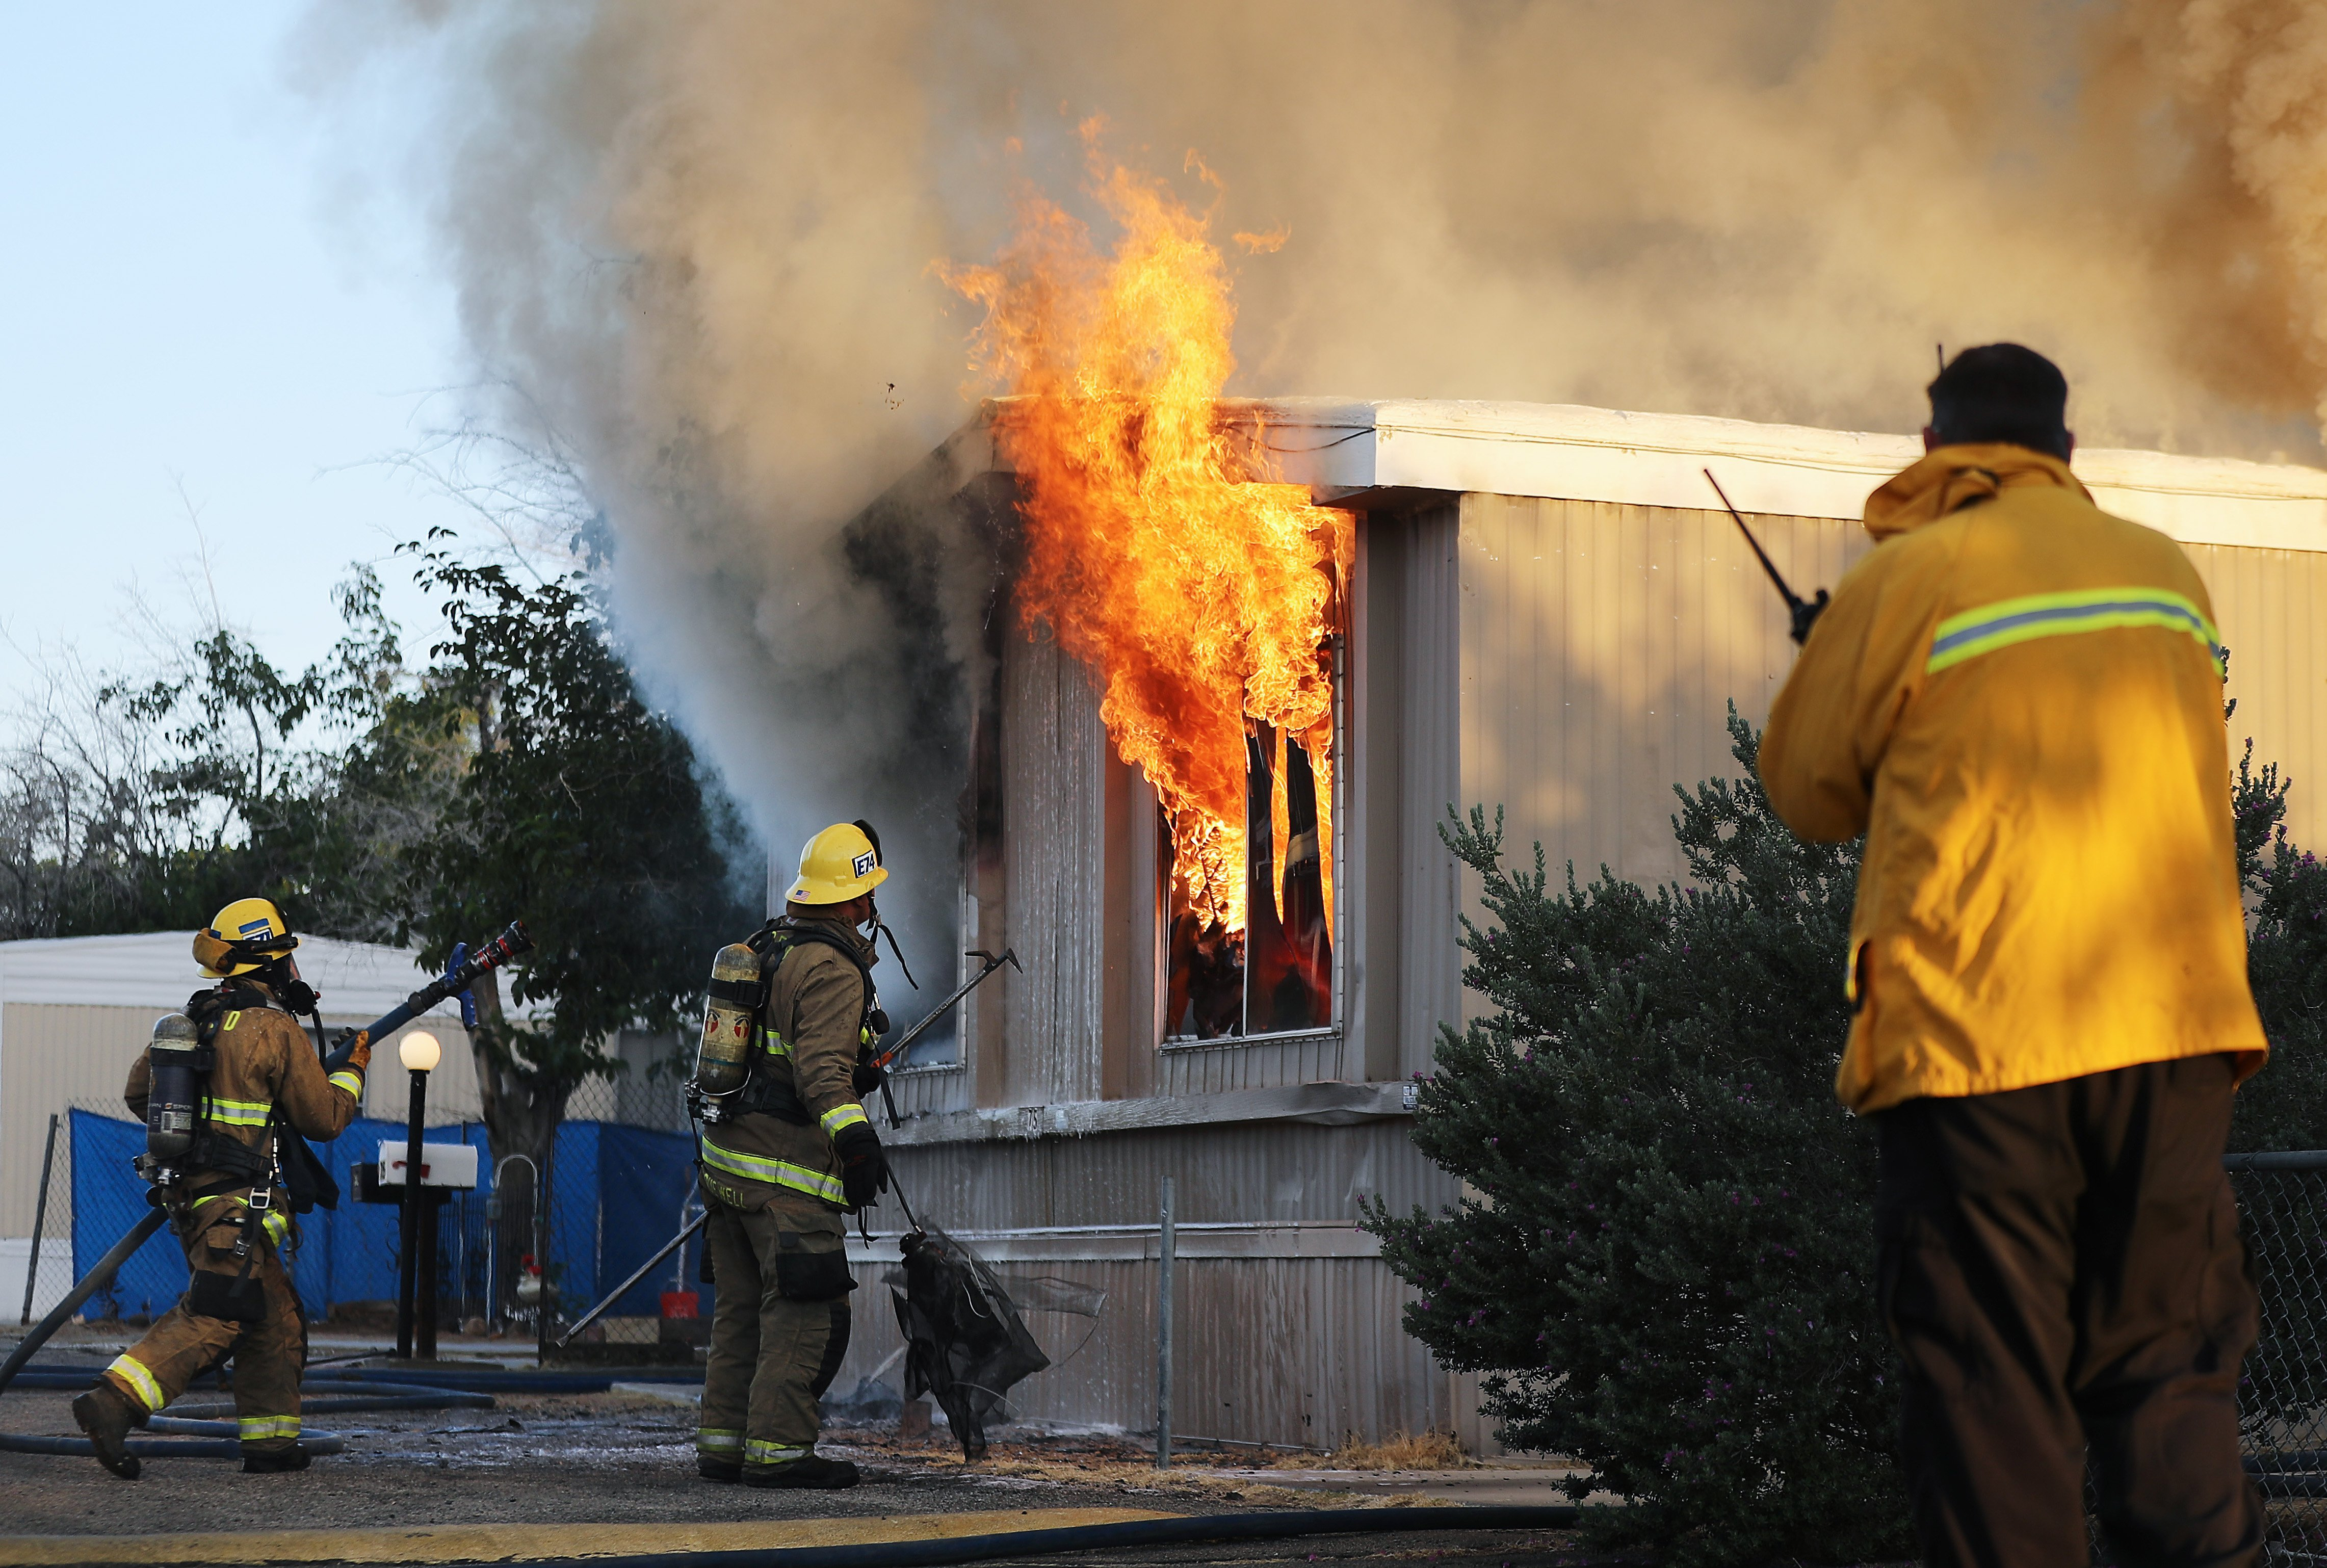 Firefighters trying to put out a house fire the a 7.1 magnitude earthquake in Ridgecrest, California | Photo: Getty Images